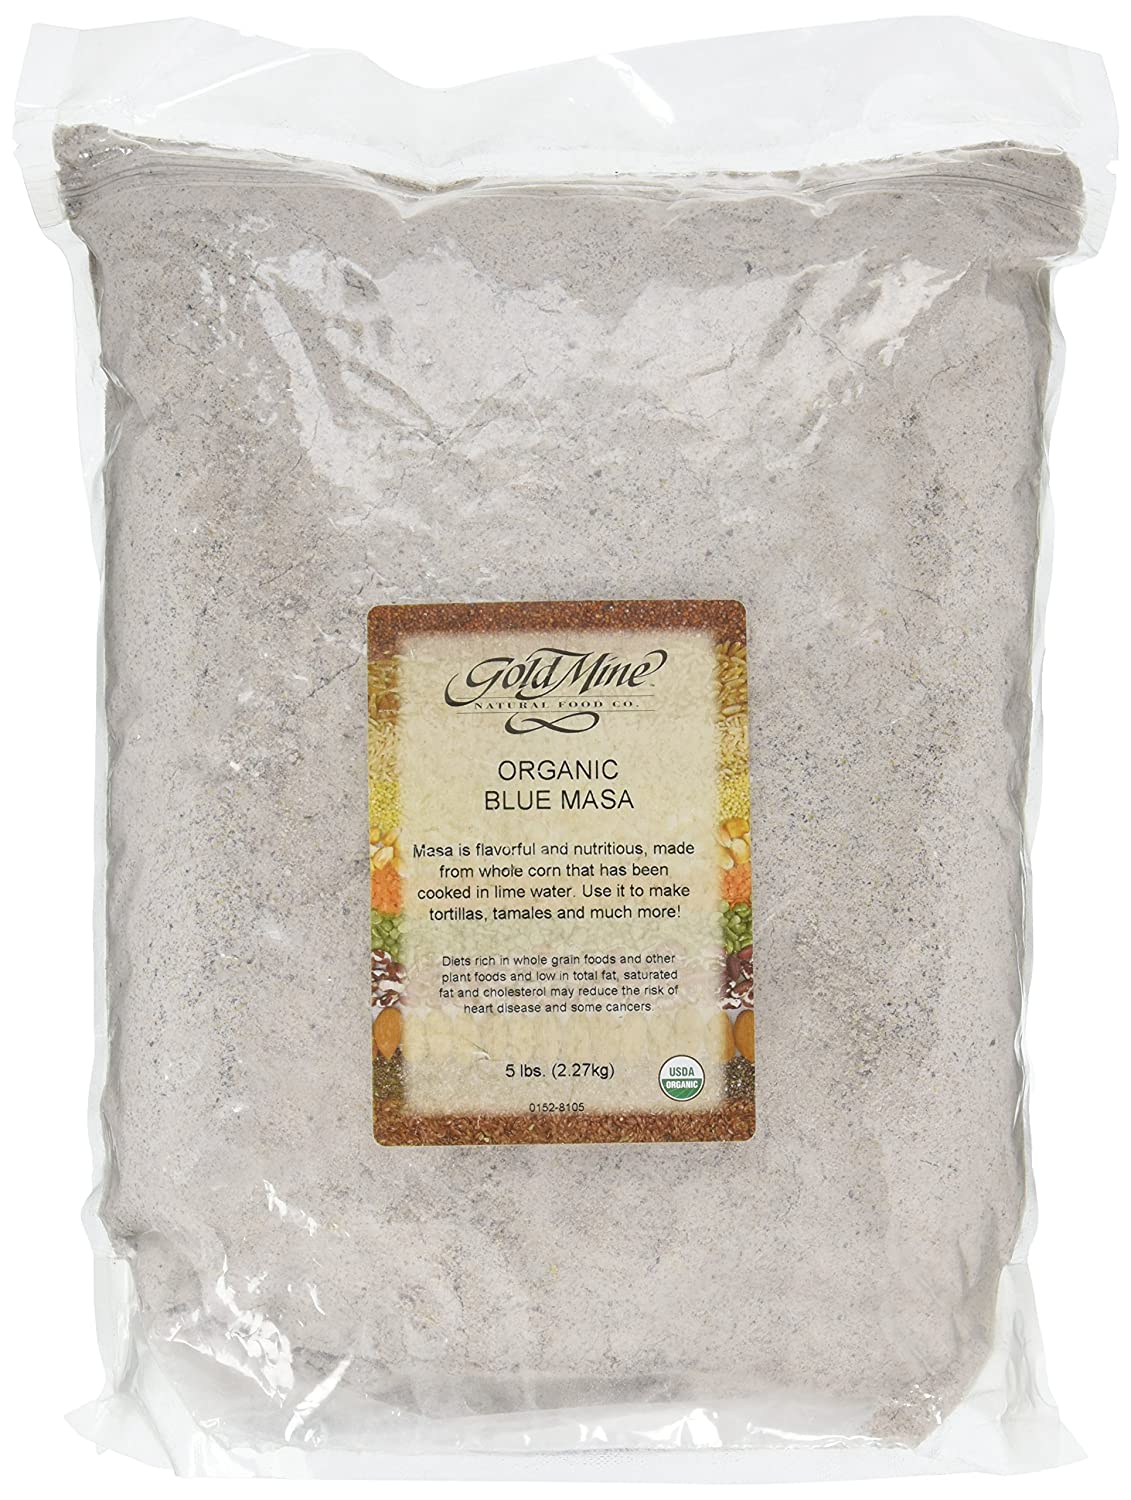 Gold Mine Blue Corn Masa Harina - USDA Organic - Macrobiotic, Vegan, Kosher and Gluten-Free Flour for Healthy Mexican Dishes - 5 LBS